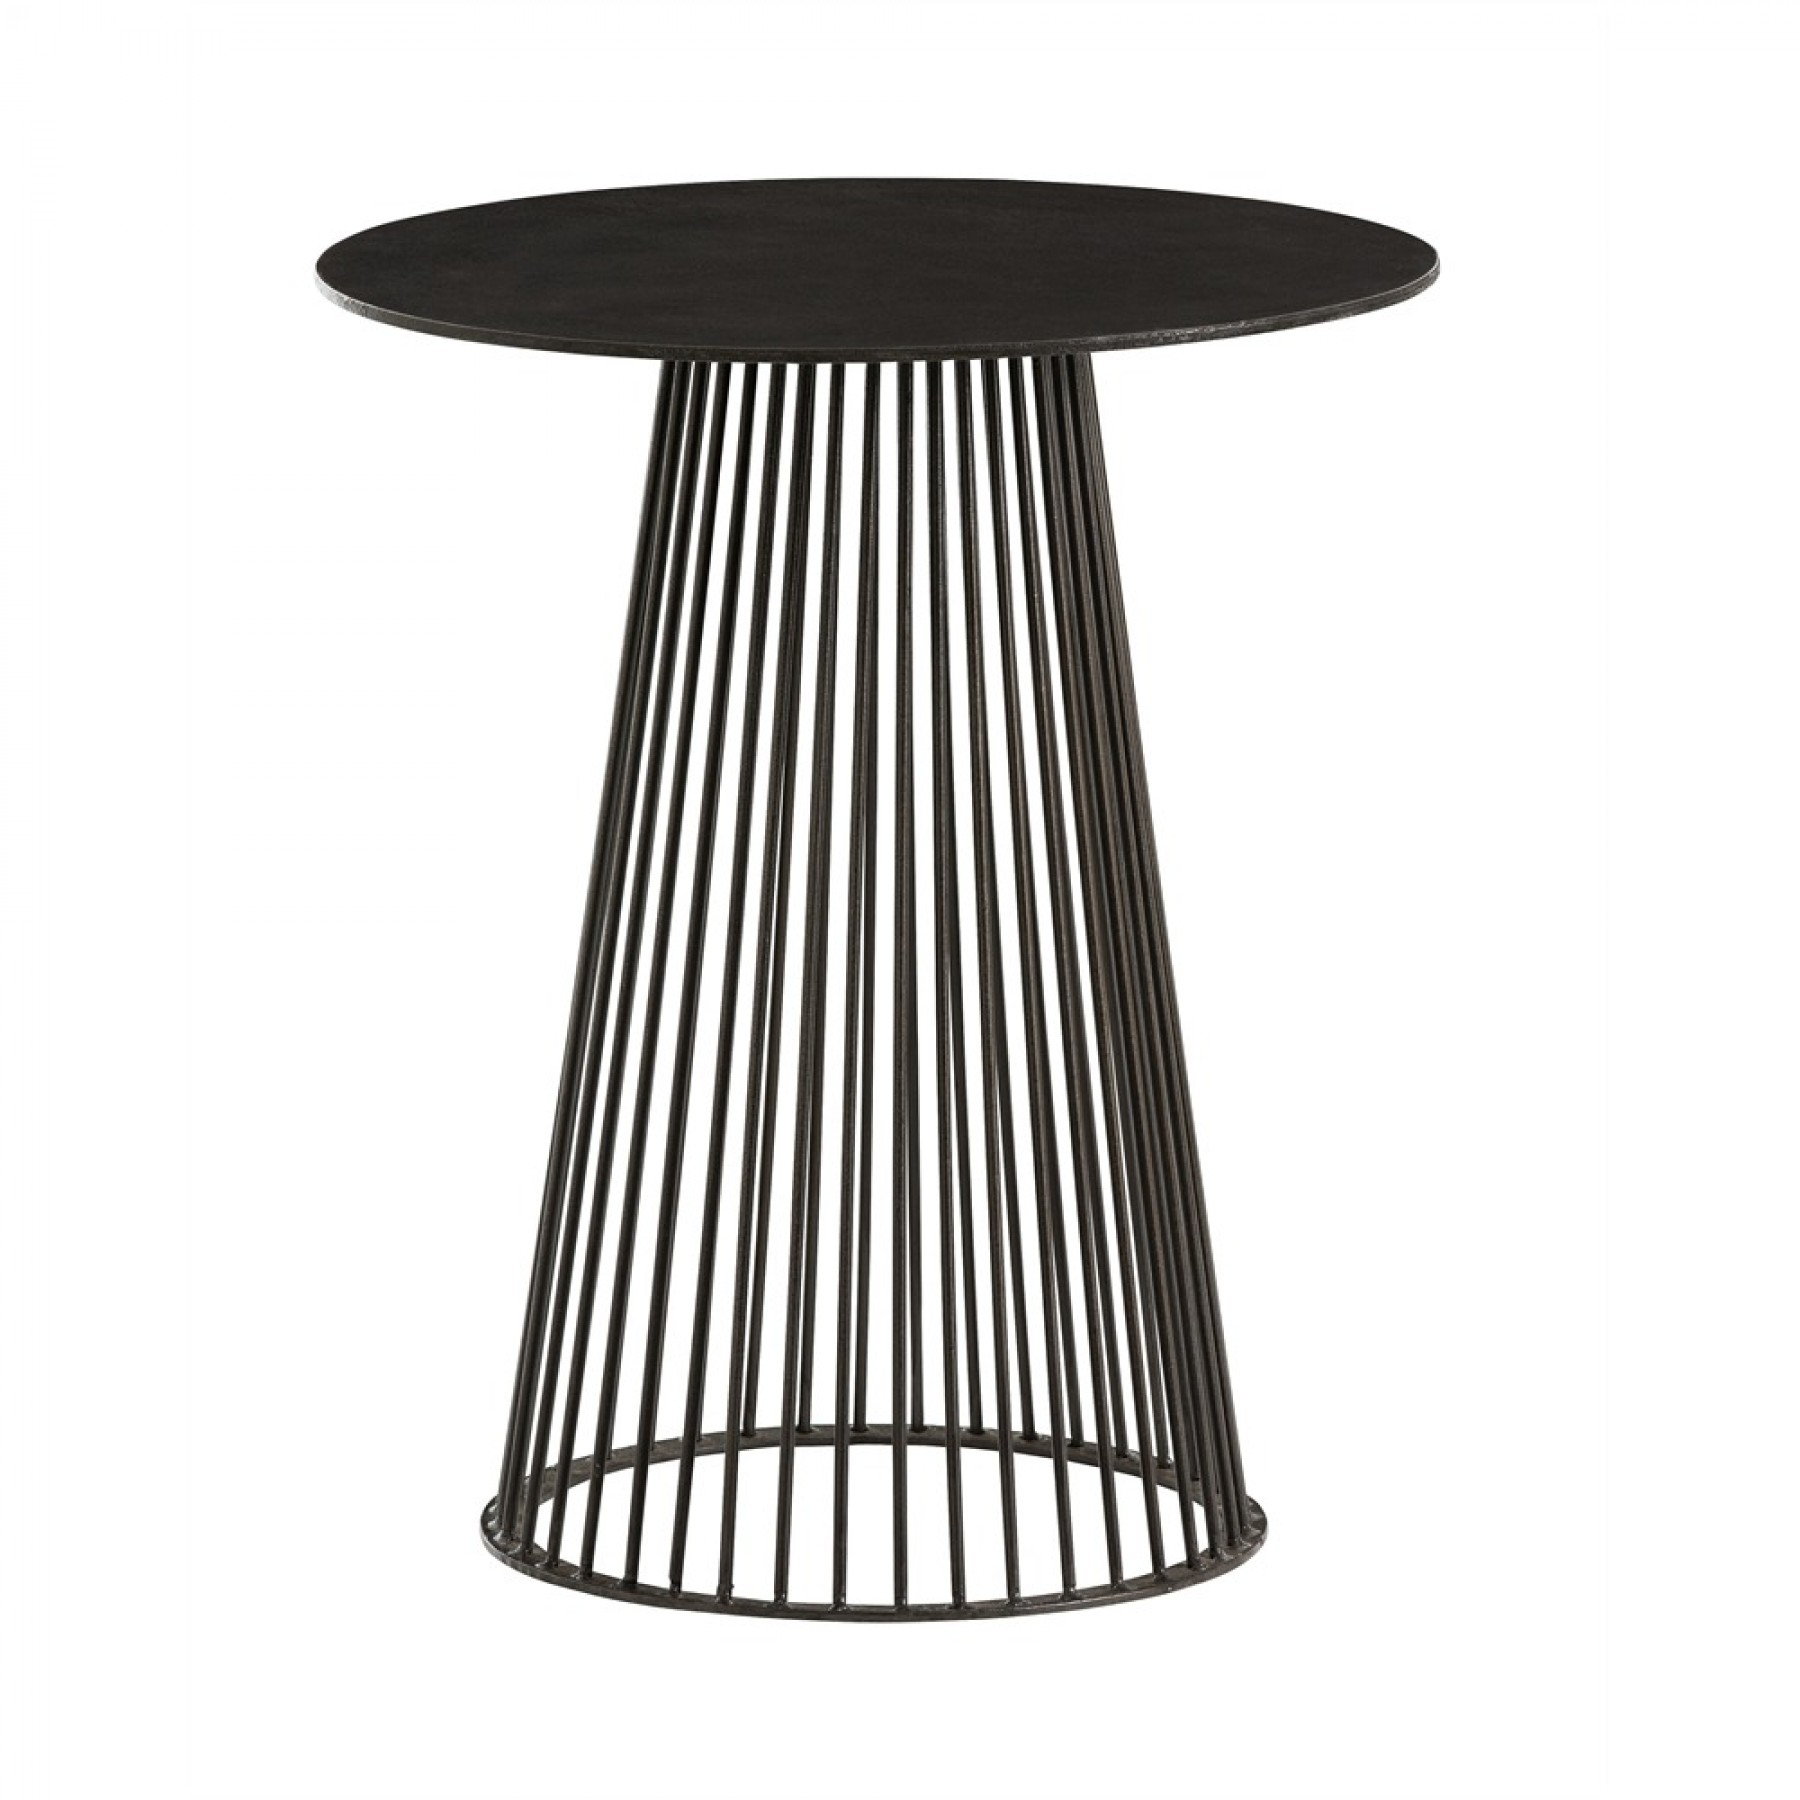 lou accent table round black chair covers for outdoor furniture reclaimed wood pub modern tablecloth pottery barn metal side ethan allen kmart bedroom coffee with legs bar height